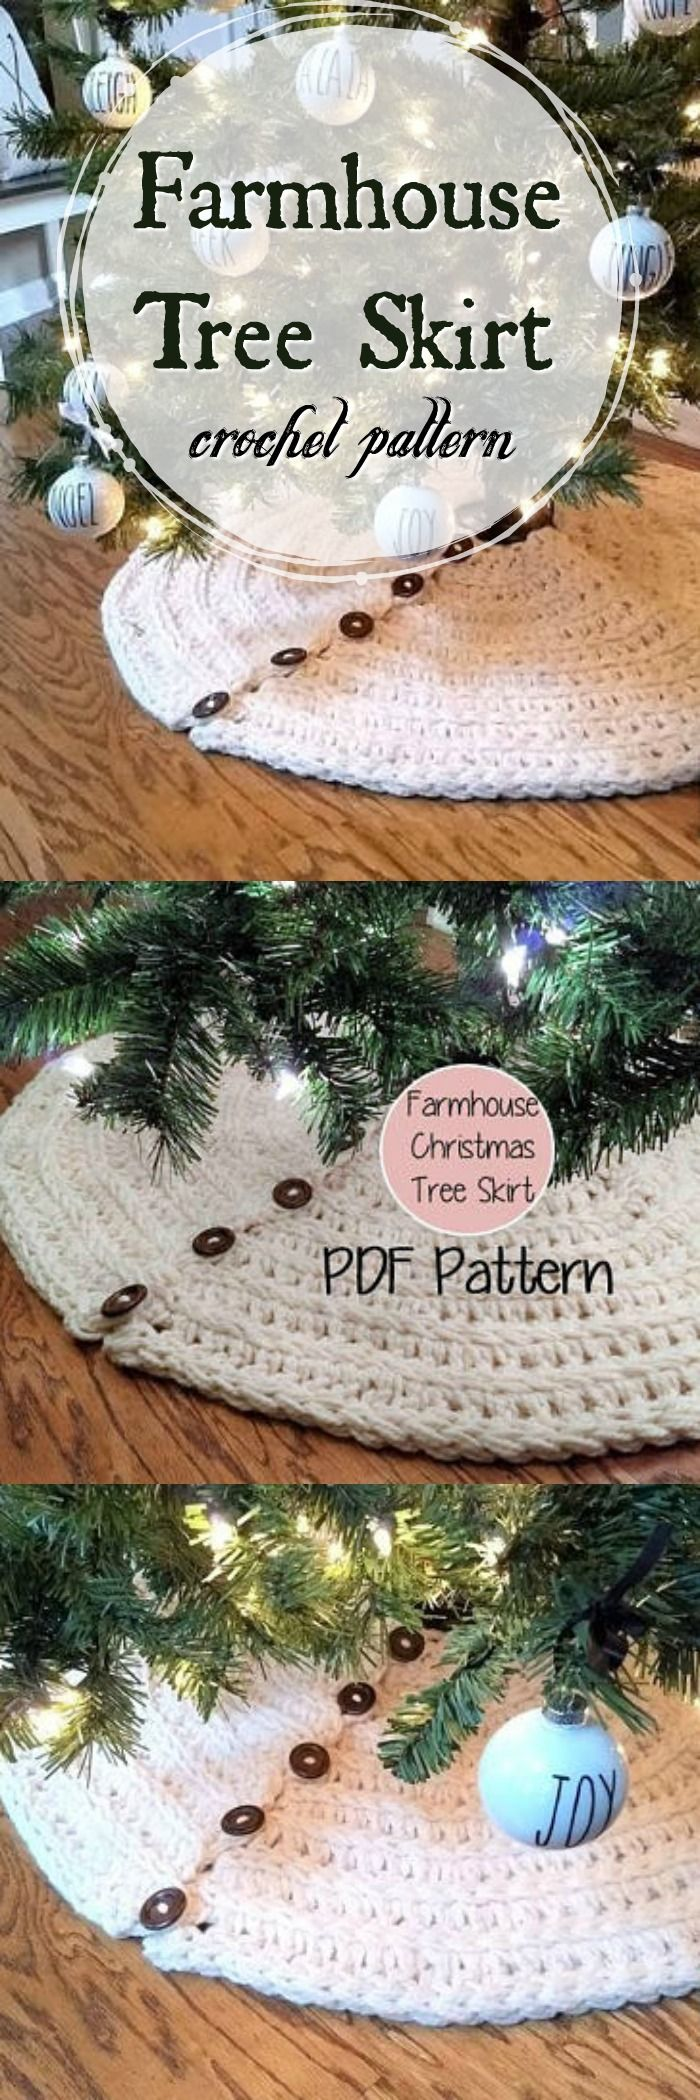 Farmhouse Christmas Tree Skirt crochet pattern. I love the buttons! This rustic tree skirt looks like it would crochet up quickly with chunky or bulky yarn! Still time before Christmas! #holiday #pattern #crochet #farmhousestyle #RusticChristmas #decor #affiliate #etsy